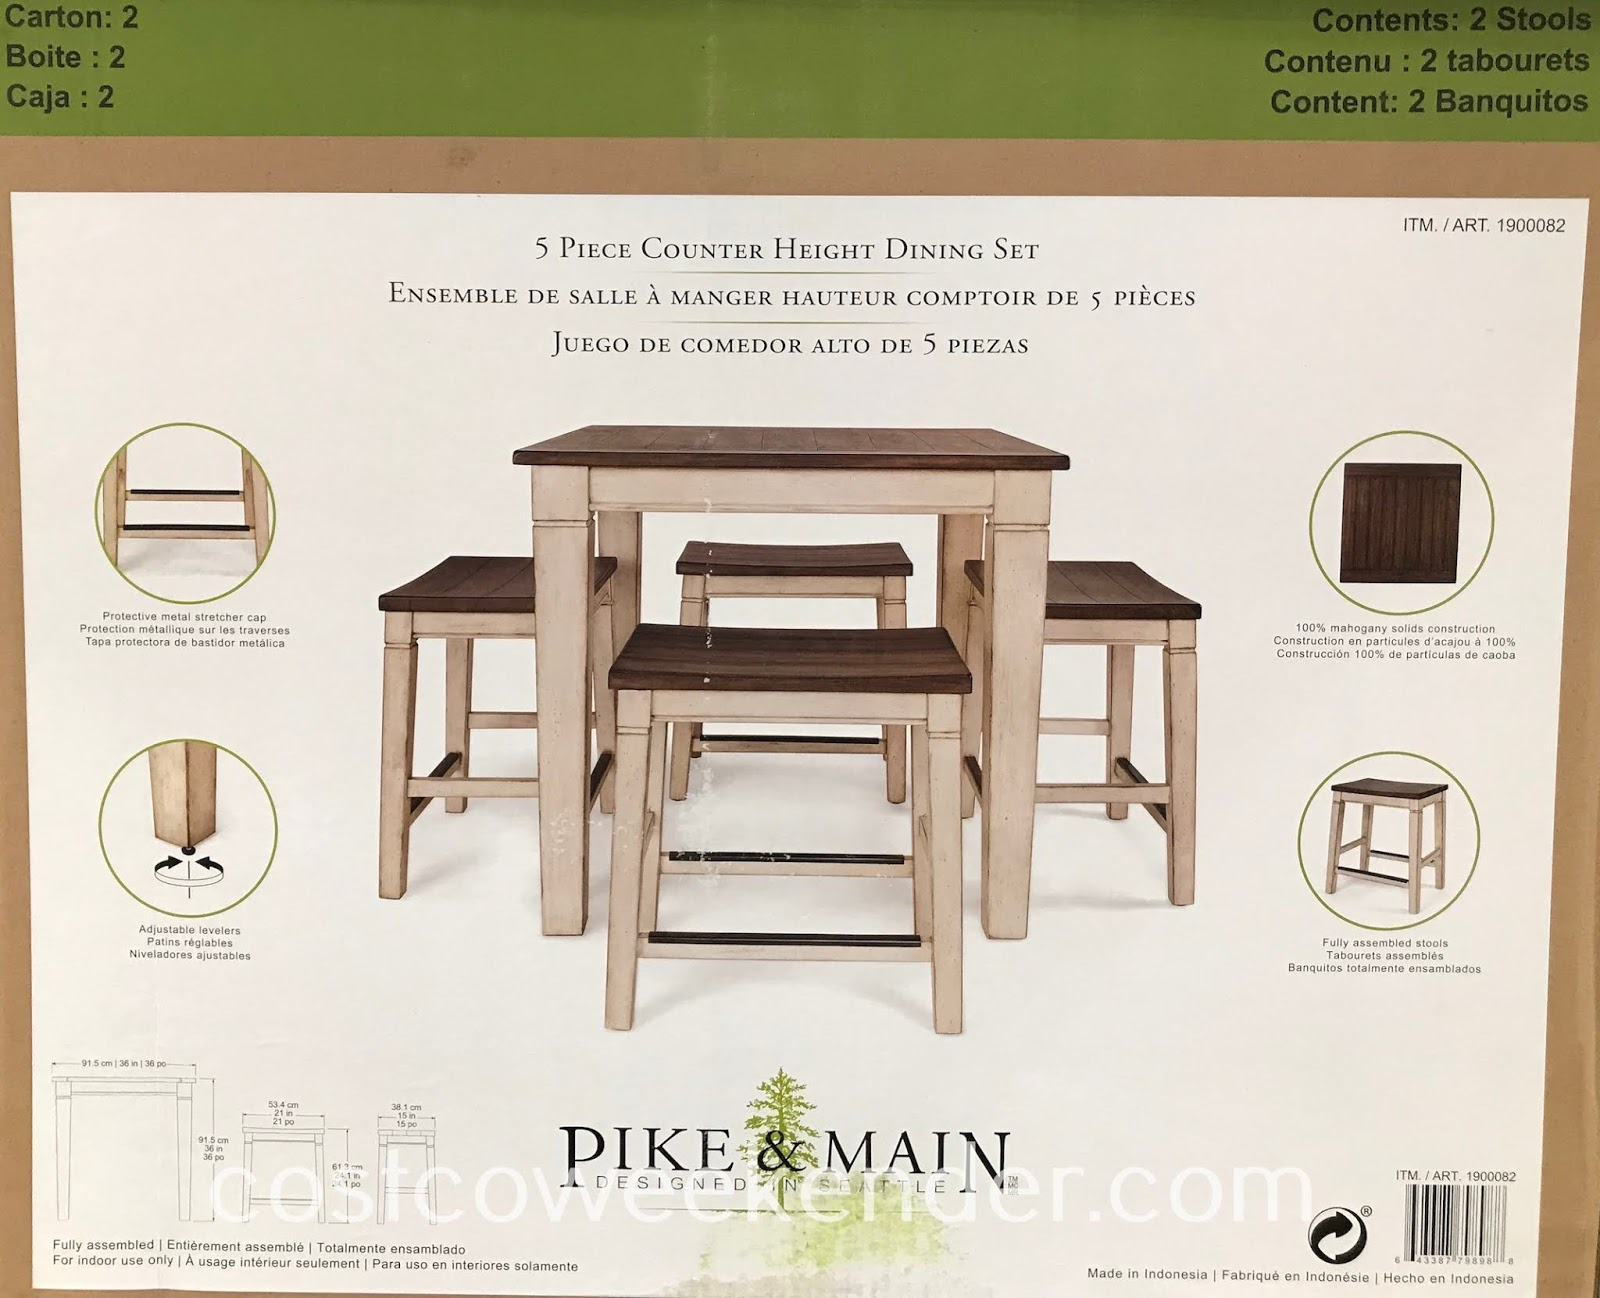 The Pike & Main 5-piece Counter Height Dining Set is perfect for apartments or other small spaces